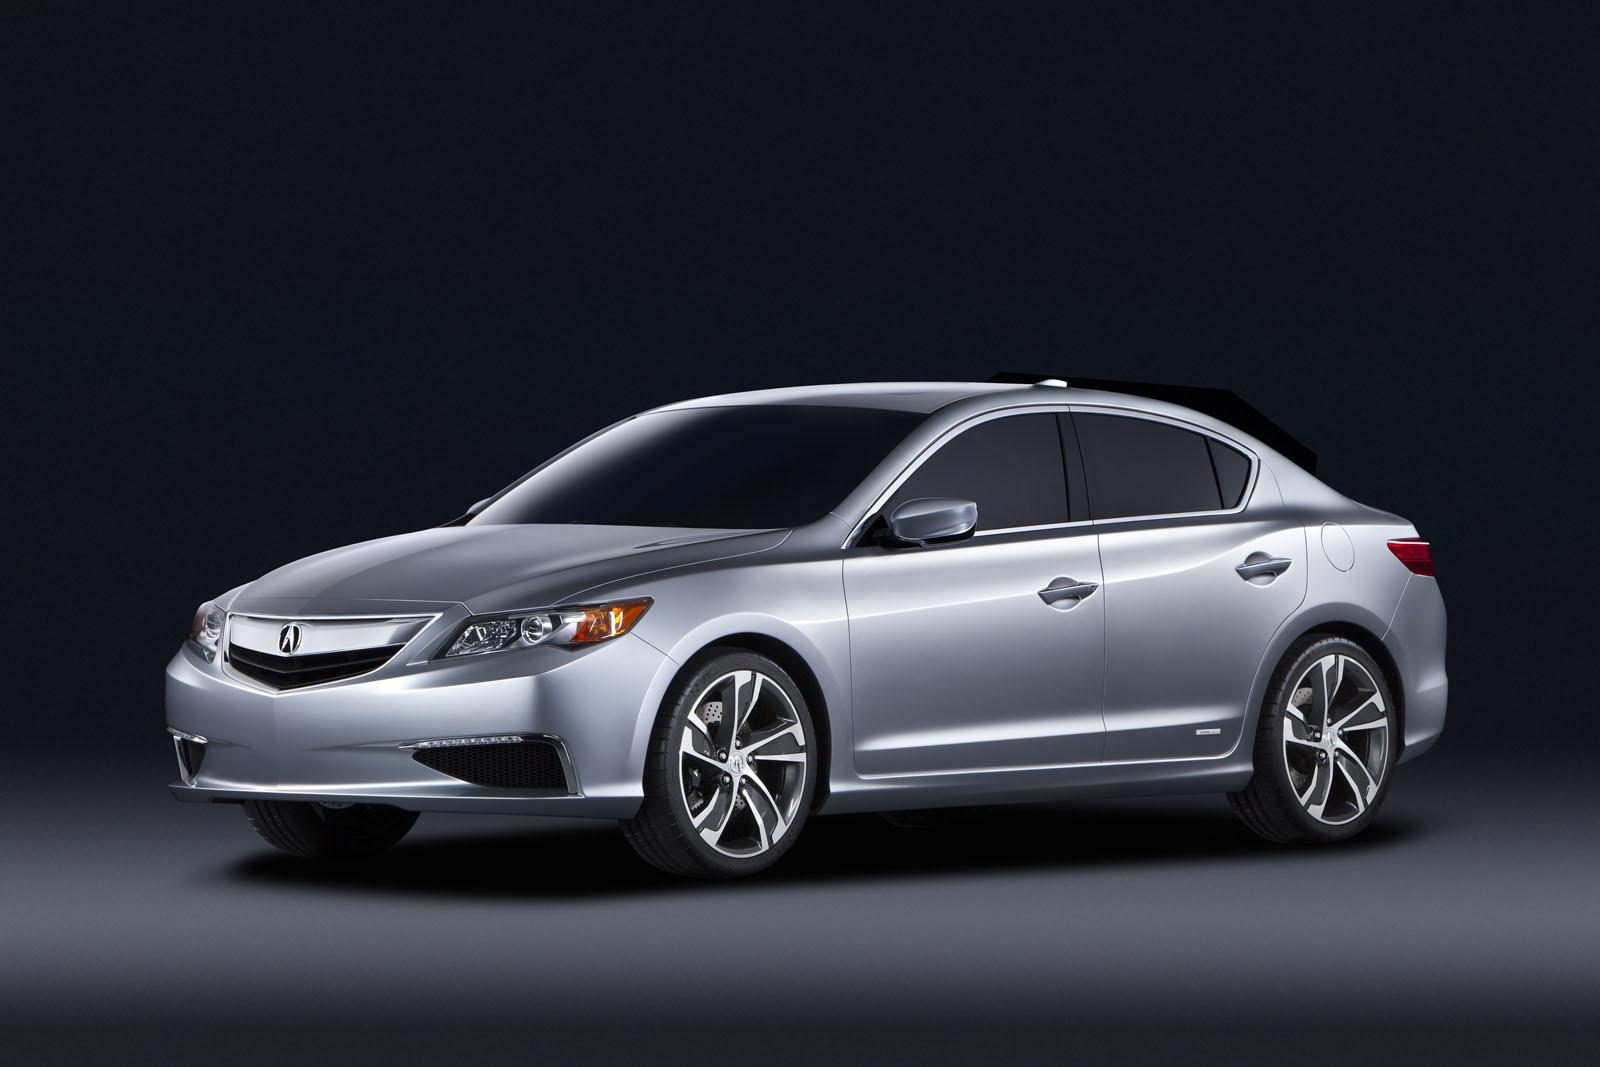 2013 Acura ILX 2013 Acura ILX & RDX   to Be Launched for Sale